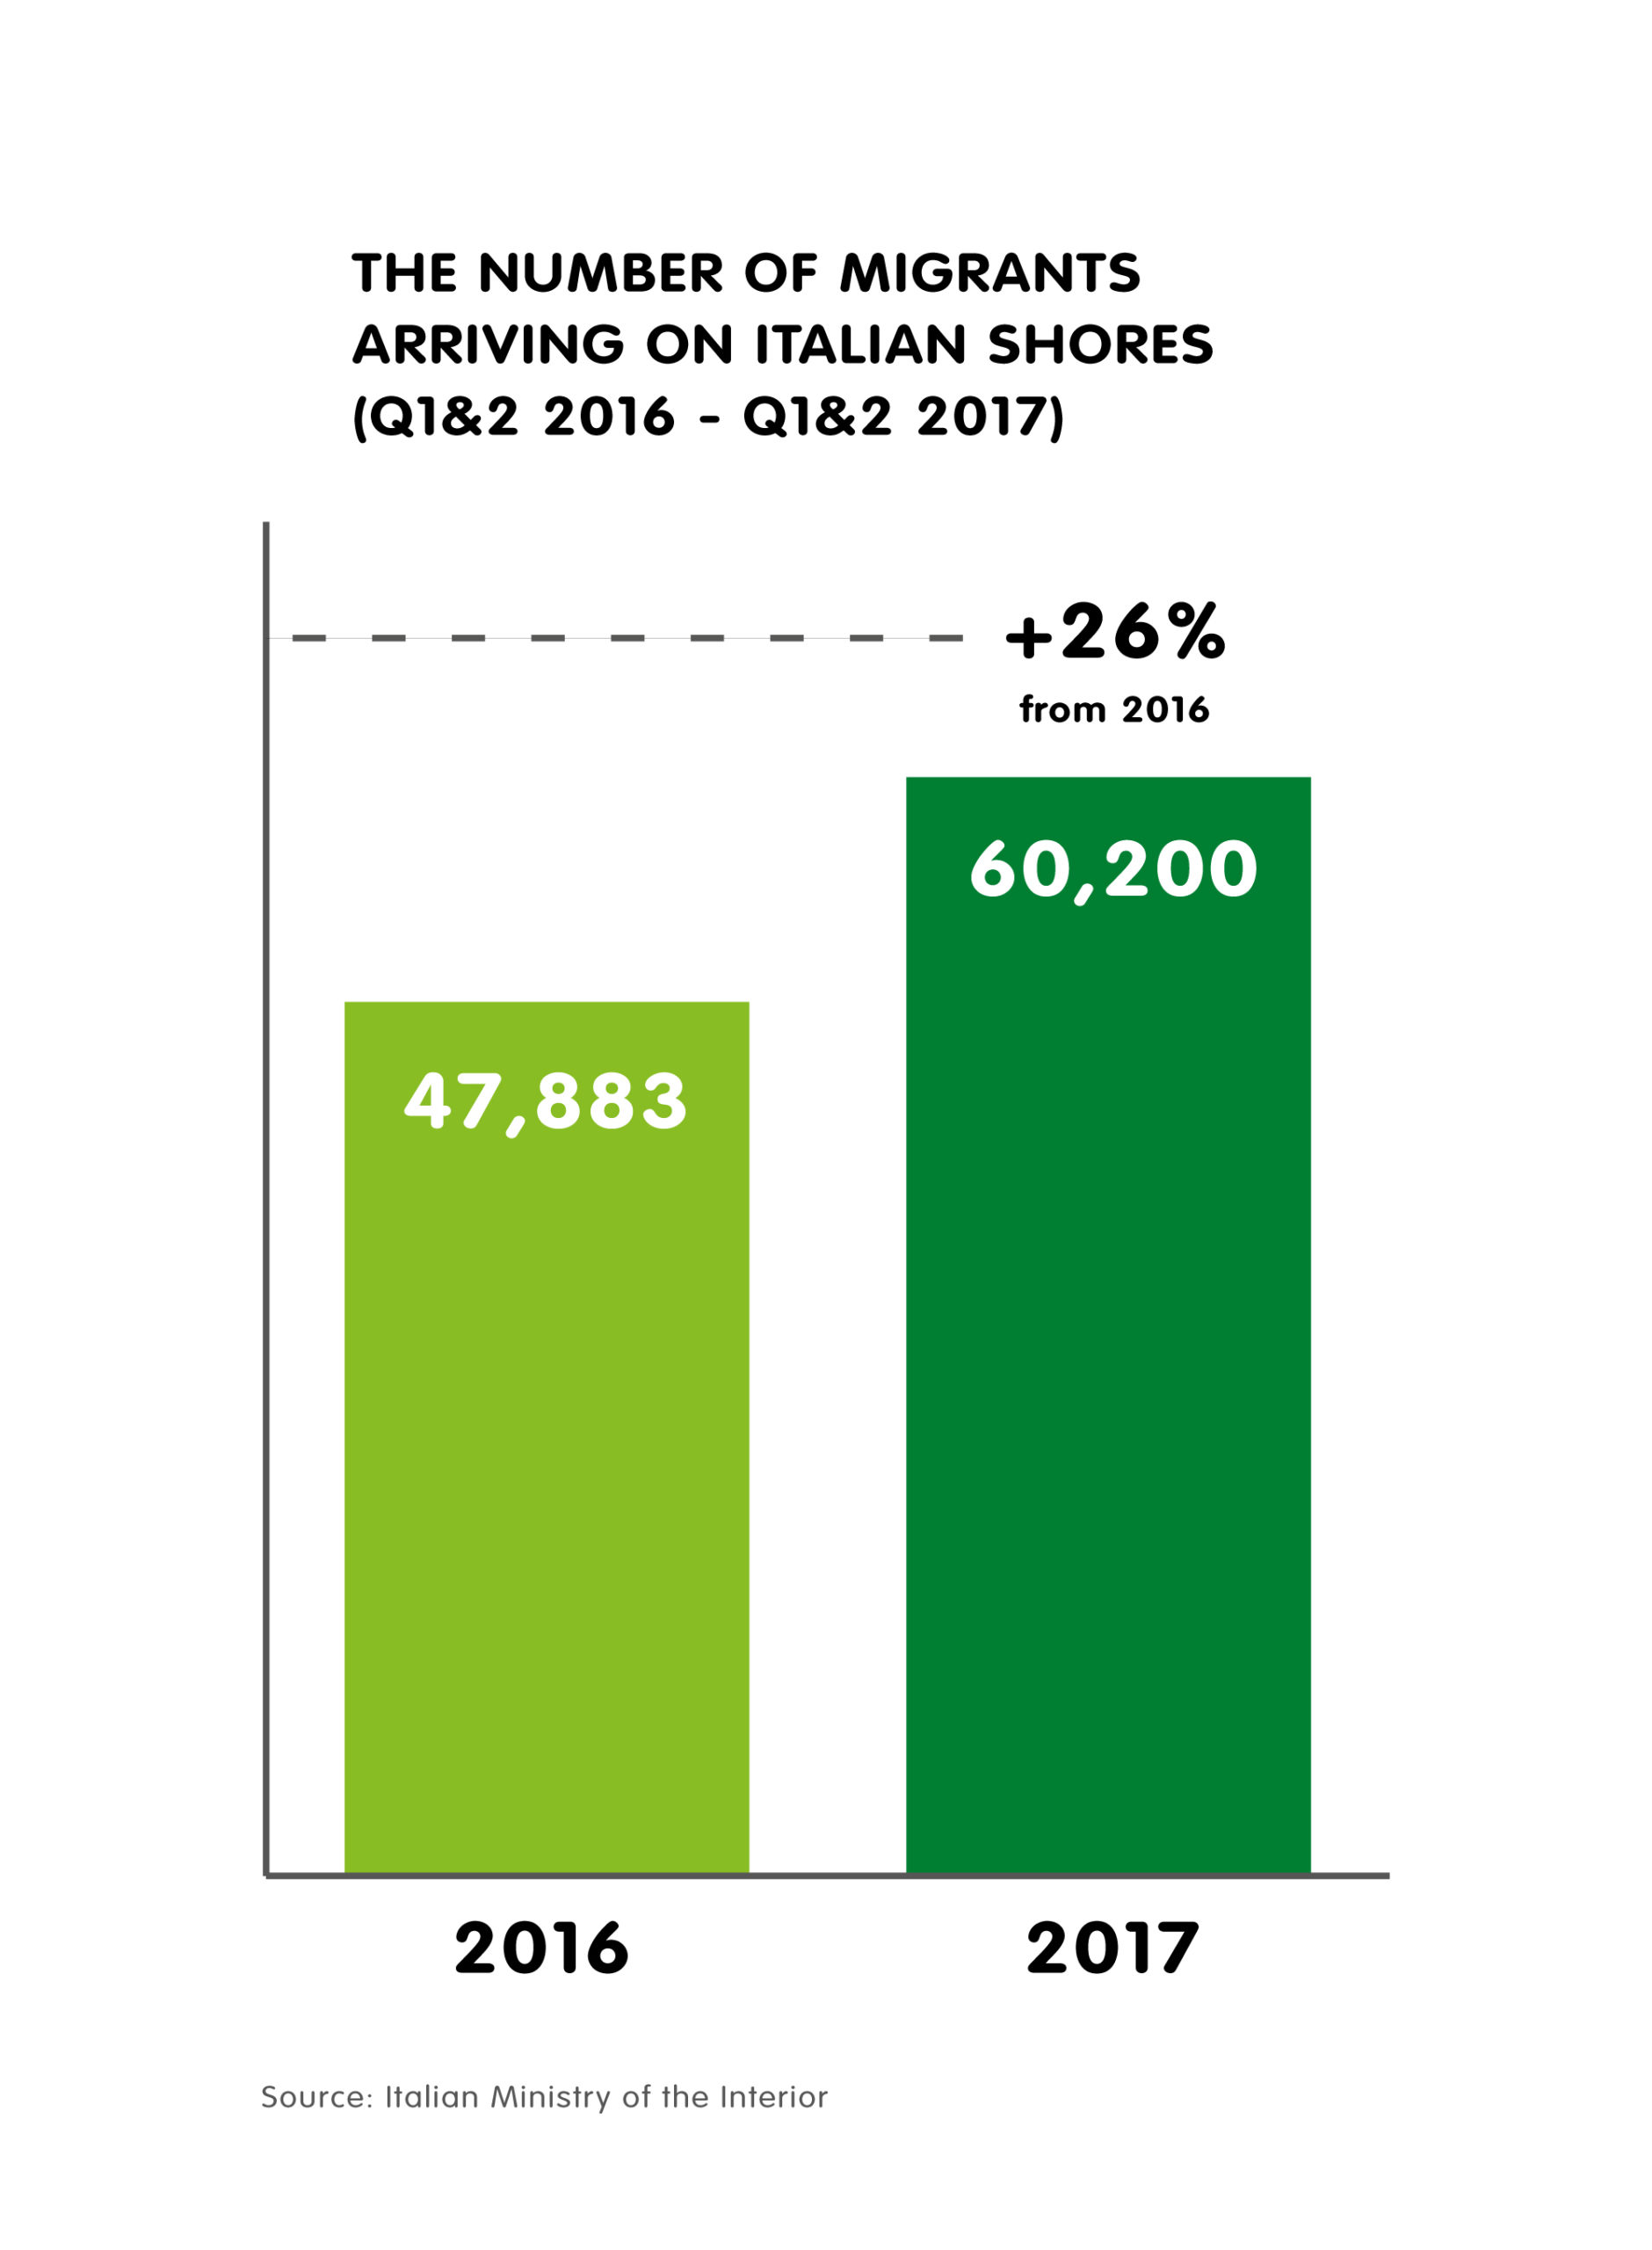 Number of Migrants Arriving on Italian Shores 2016-2017, 26% increase, Infographic.